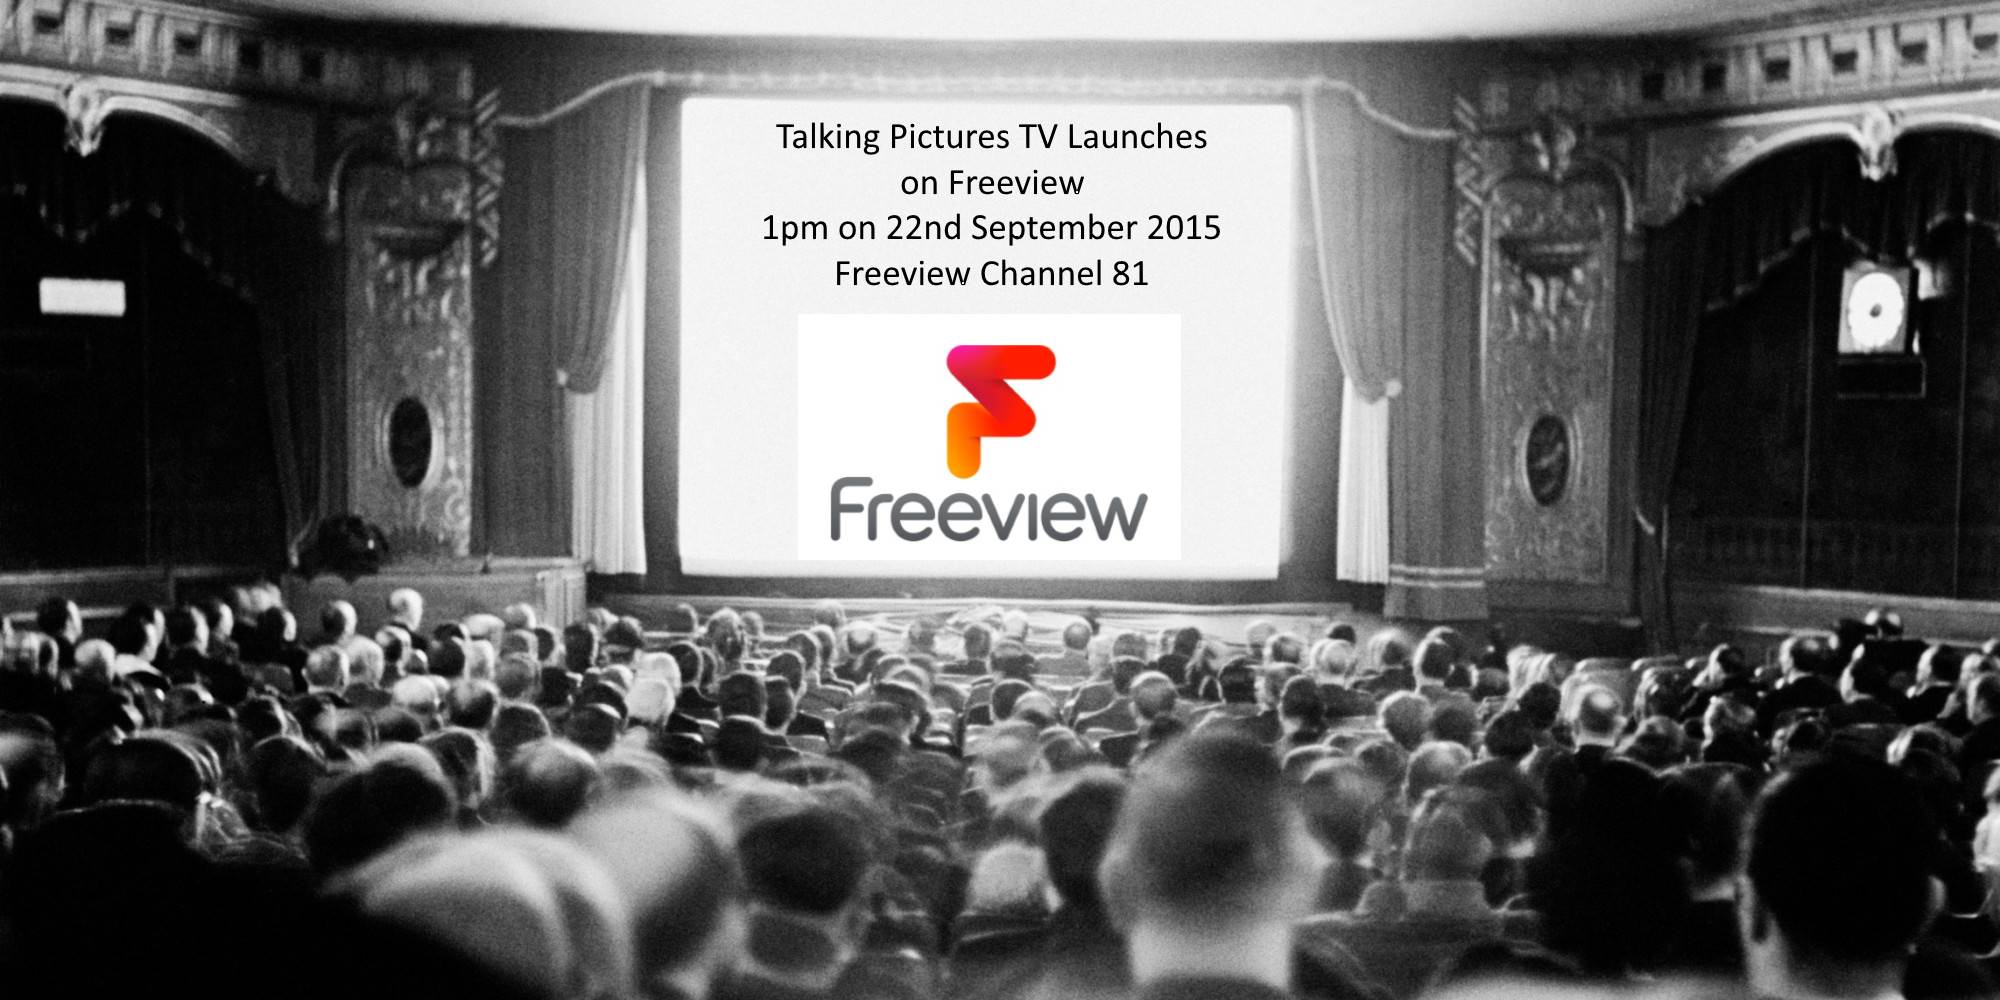 Talking Pictures TV LAUNCH on Freeview Channel 81 | Talking Pictures TV